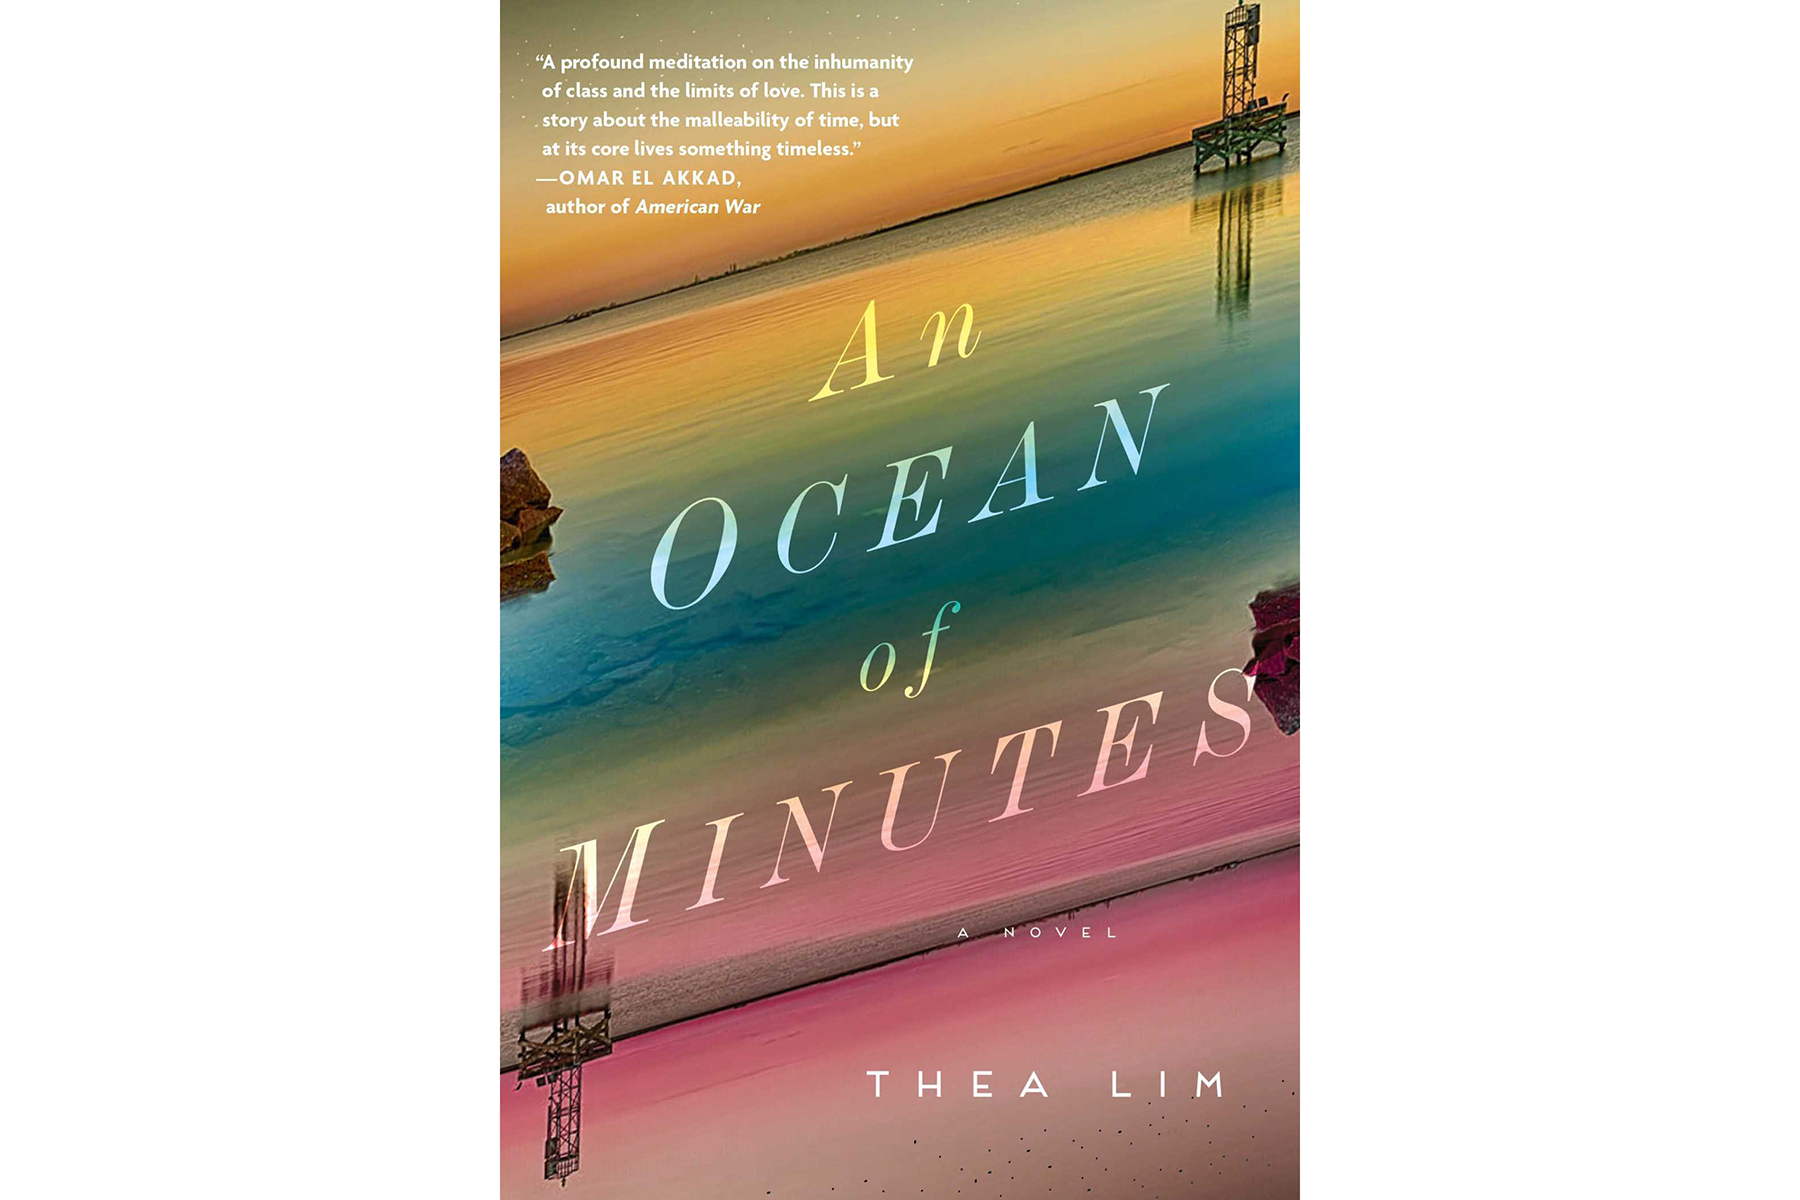 An Ocean of Minutes, by Thea Lim